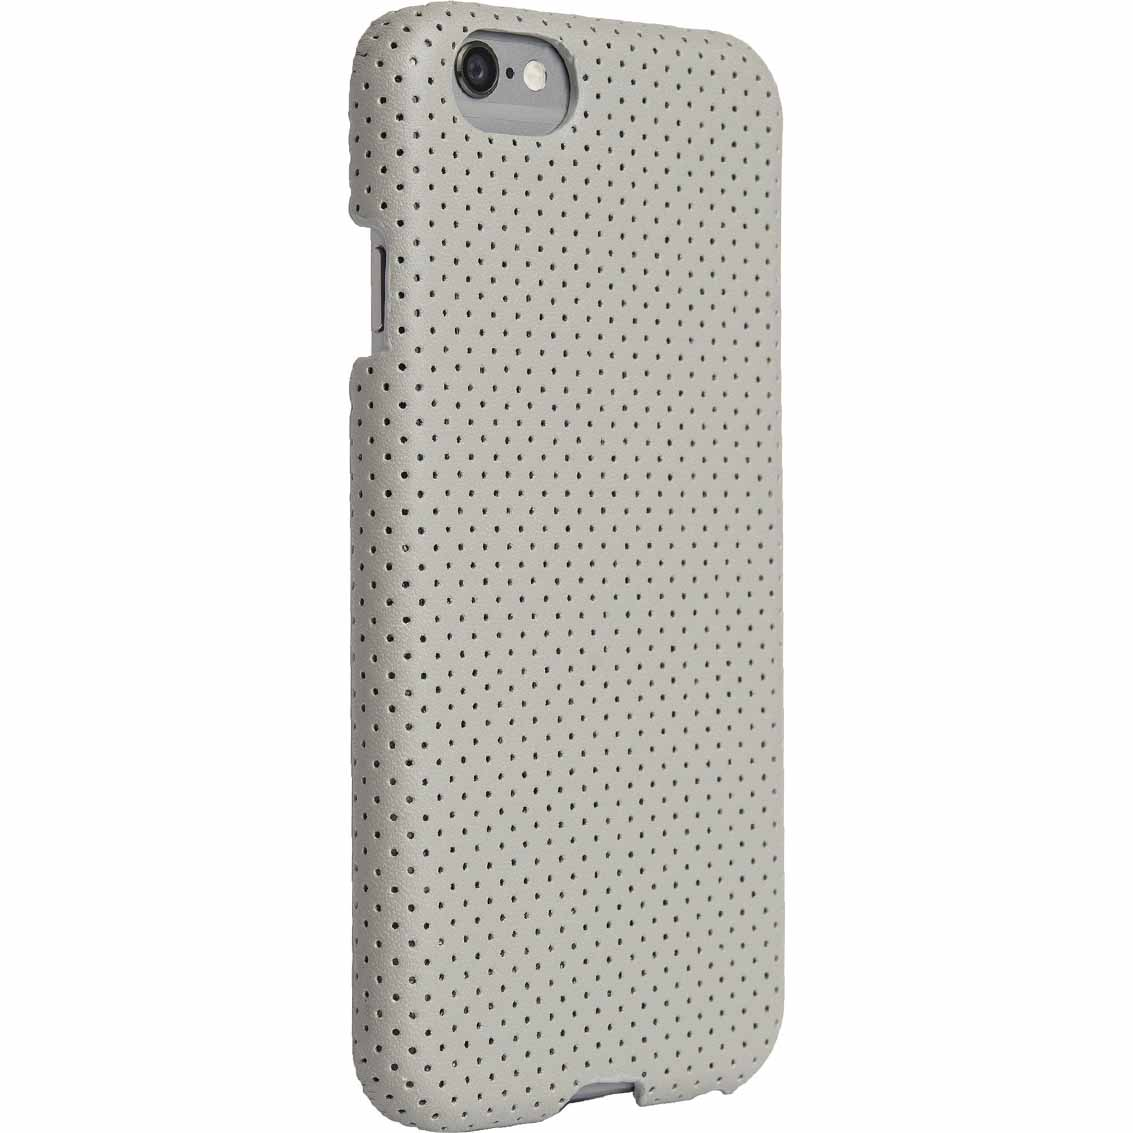 Agent 18 SlimShield Case for iPhone 6 - Perforated Wrap Gray/Black